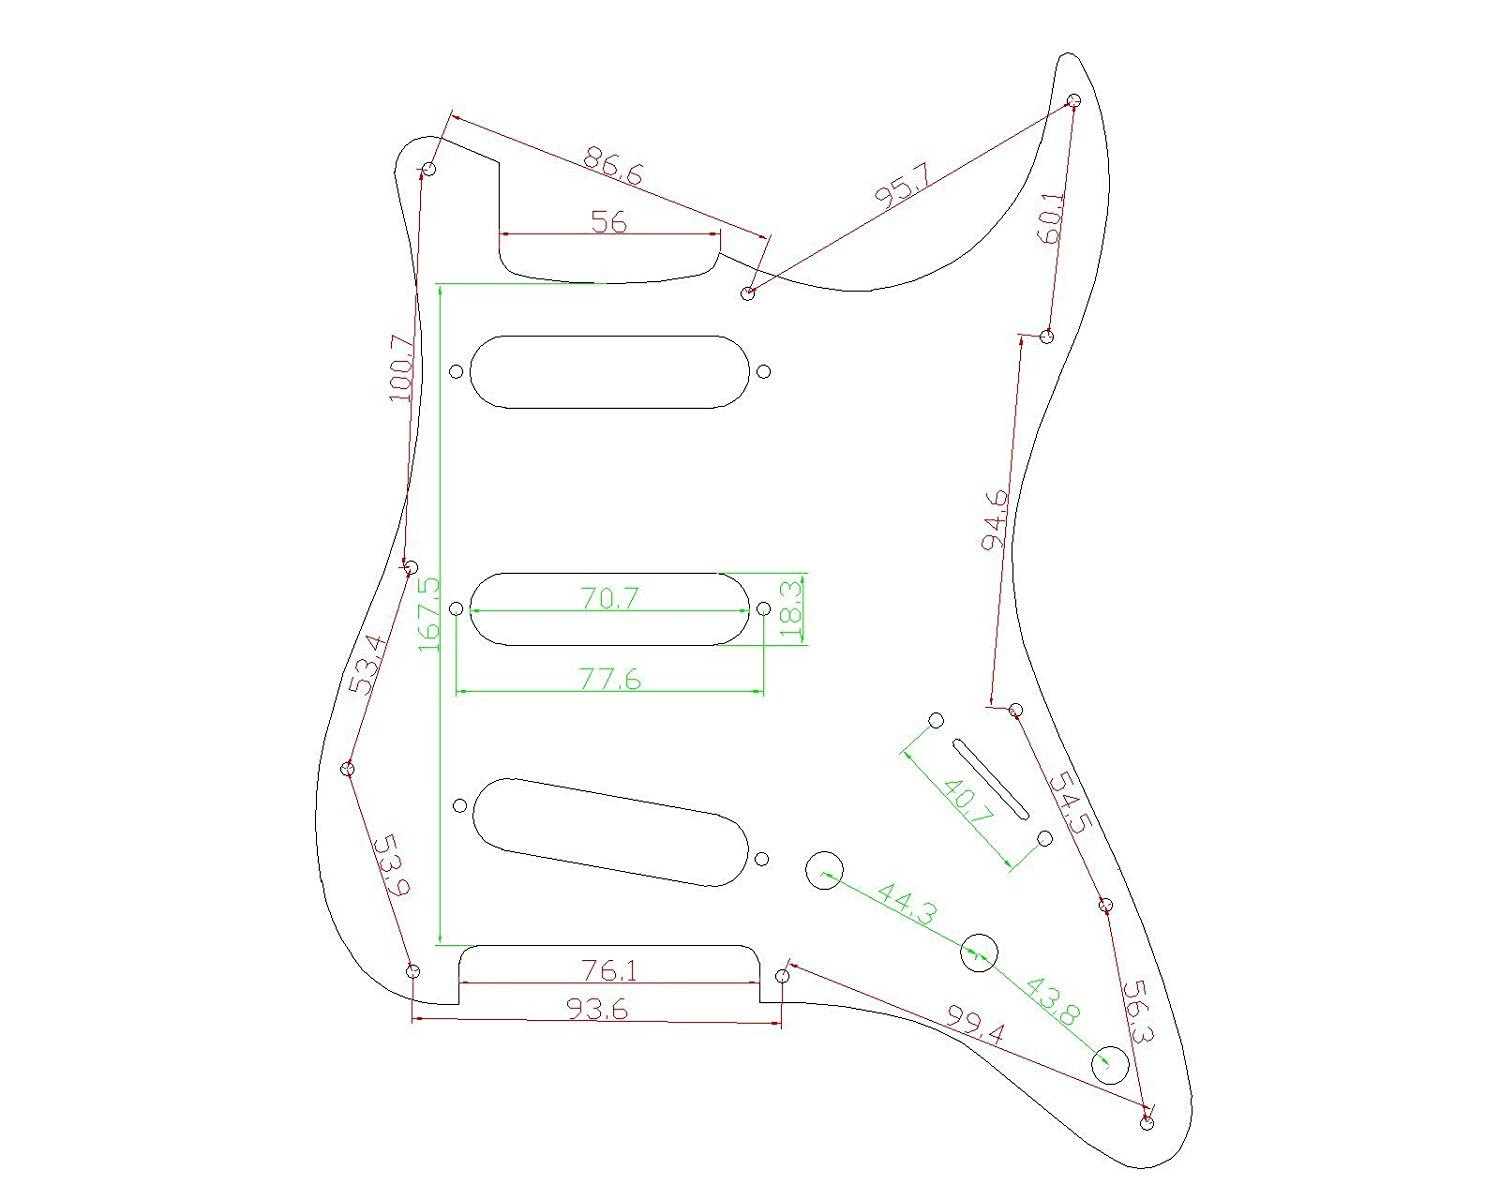 Stratocaster-Pickguard-For-Fender-US-Mexico-Strat-Electric-Guitar thumbnail 33